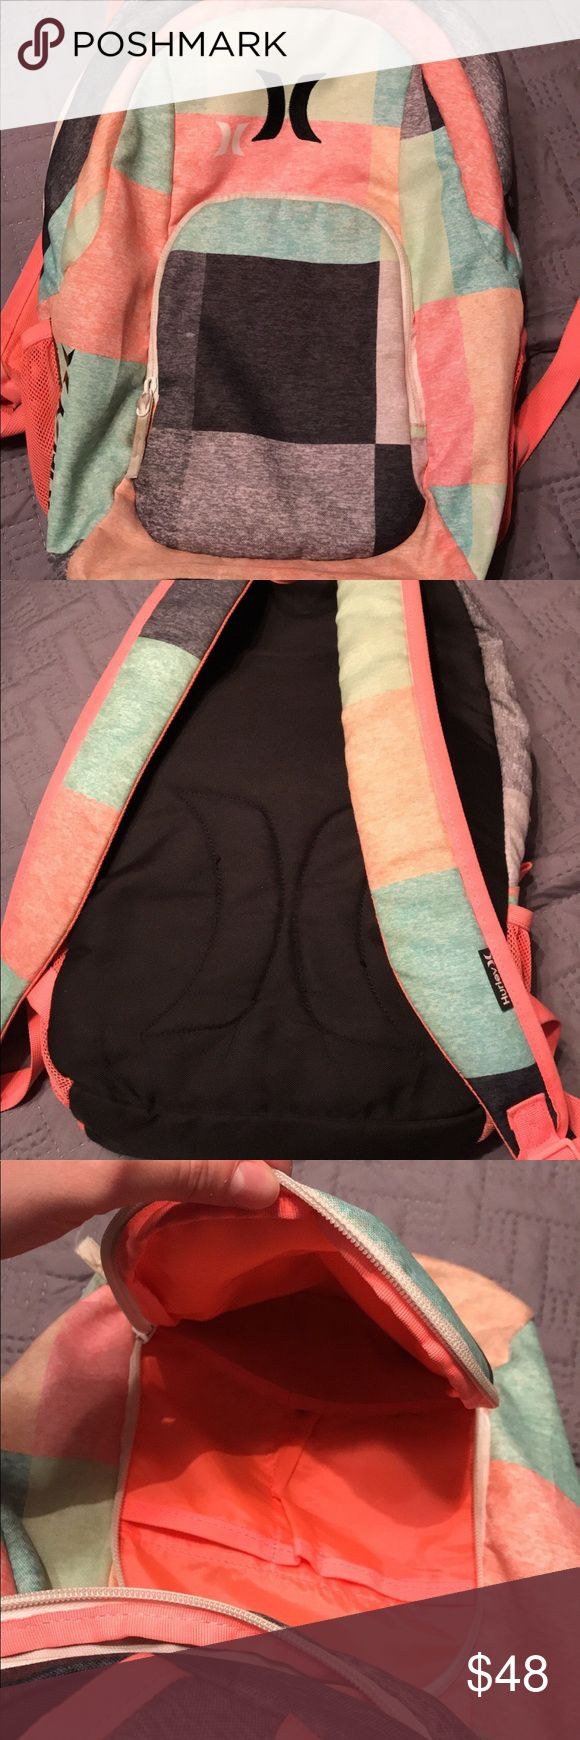 Multicolor Hurley backpack This Hurley backpack is super cute! Spacious with multiple compartments. Colors are eye catching. Great support for anyone looking for a compact bag. Worthy purchase. Minimal sings of use... just a few pencil marks on the inside. Hurley Bags Backpacks